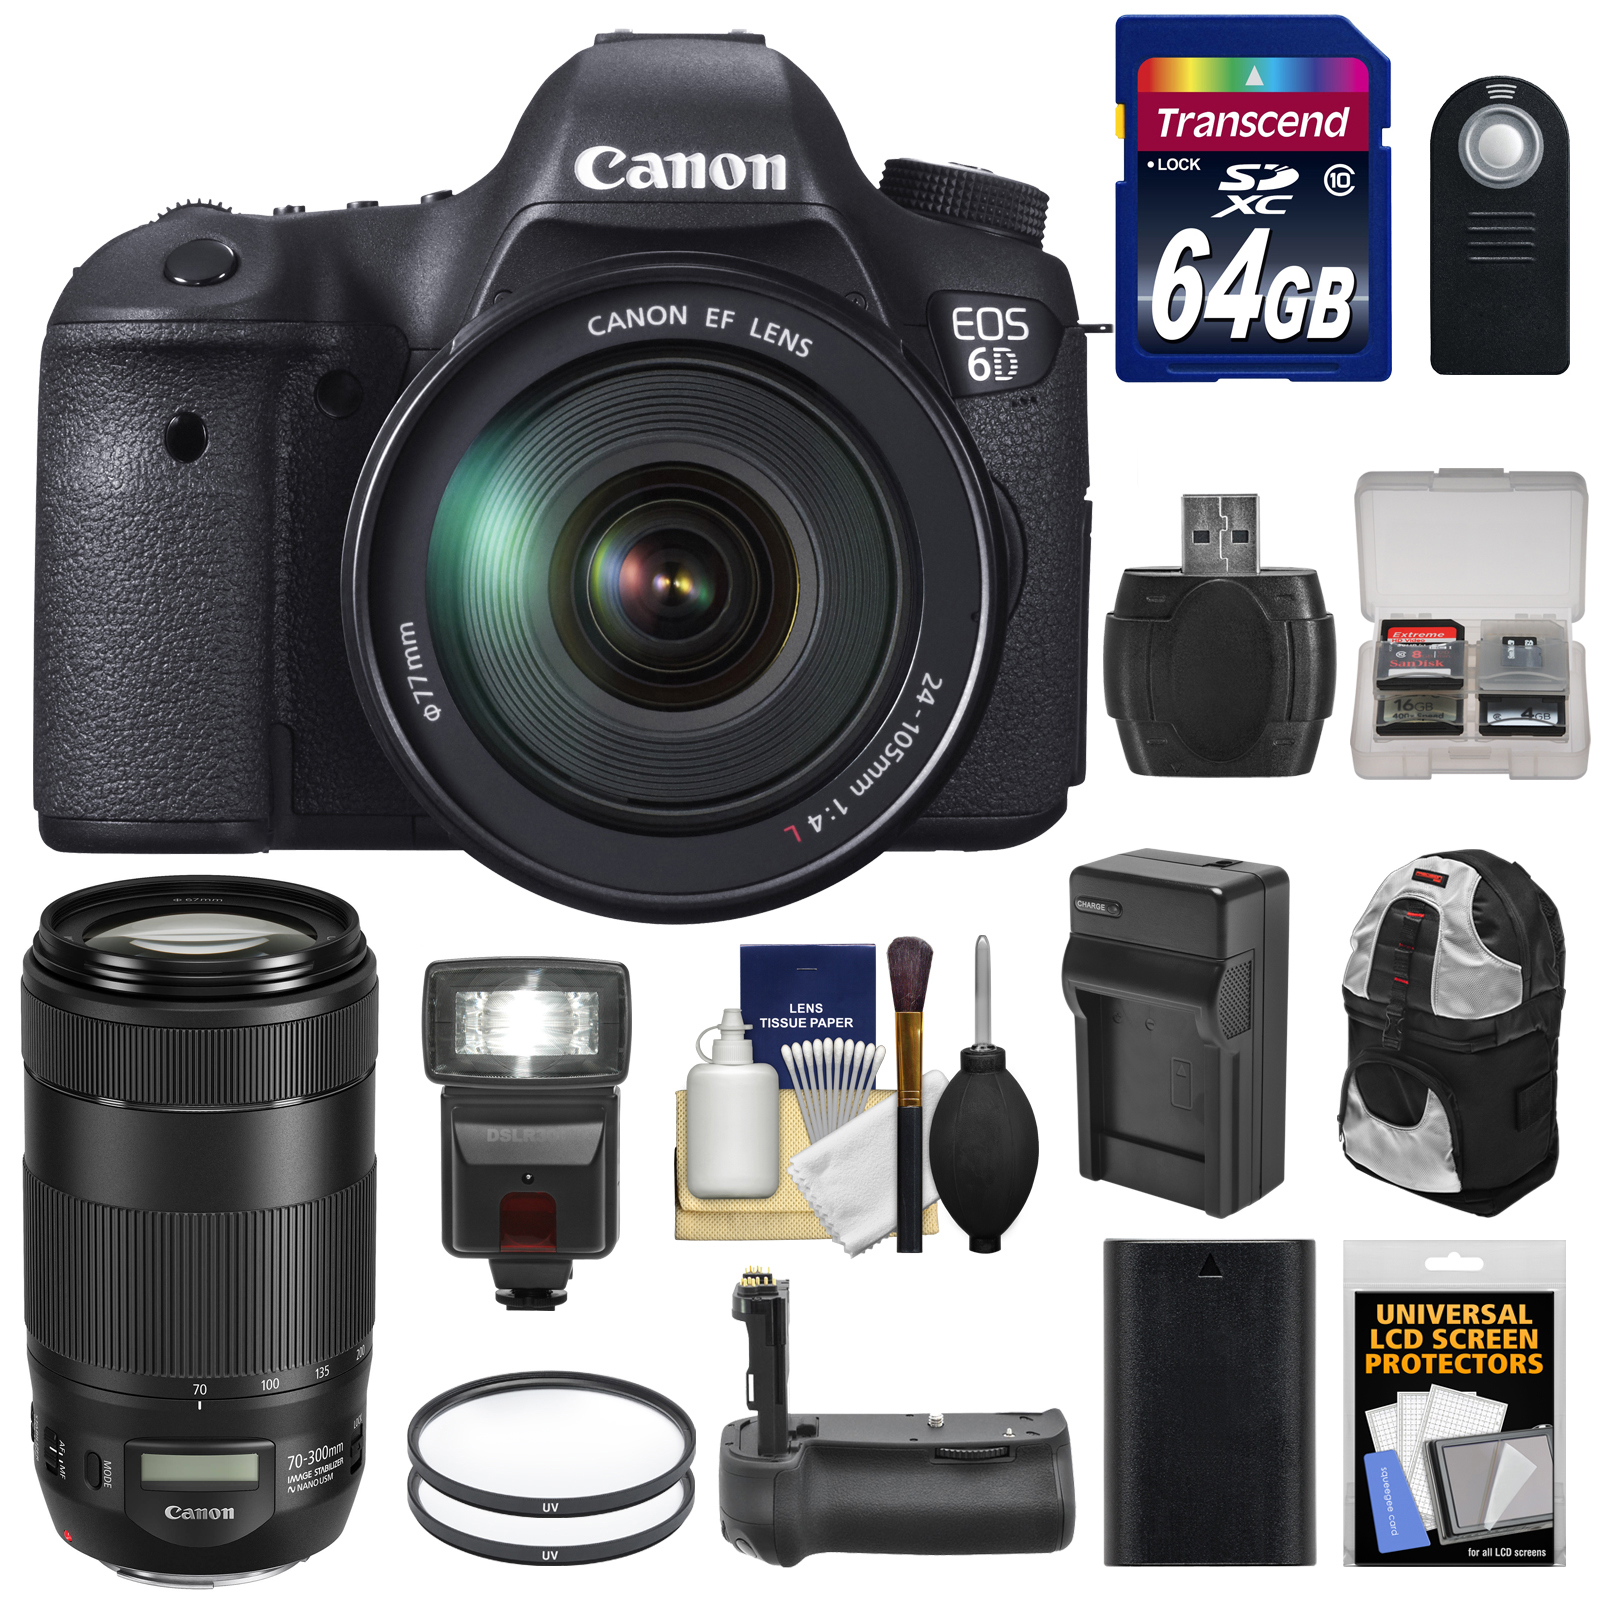 Canon EOS 6D Digital SLR Camera Body with EF 24-105mm L IS USM & 70-300mm IS II Lens + 64GB Card + Backpack + LED Flash... by Canon